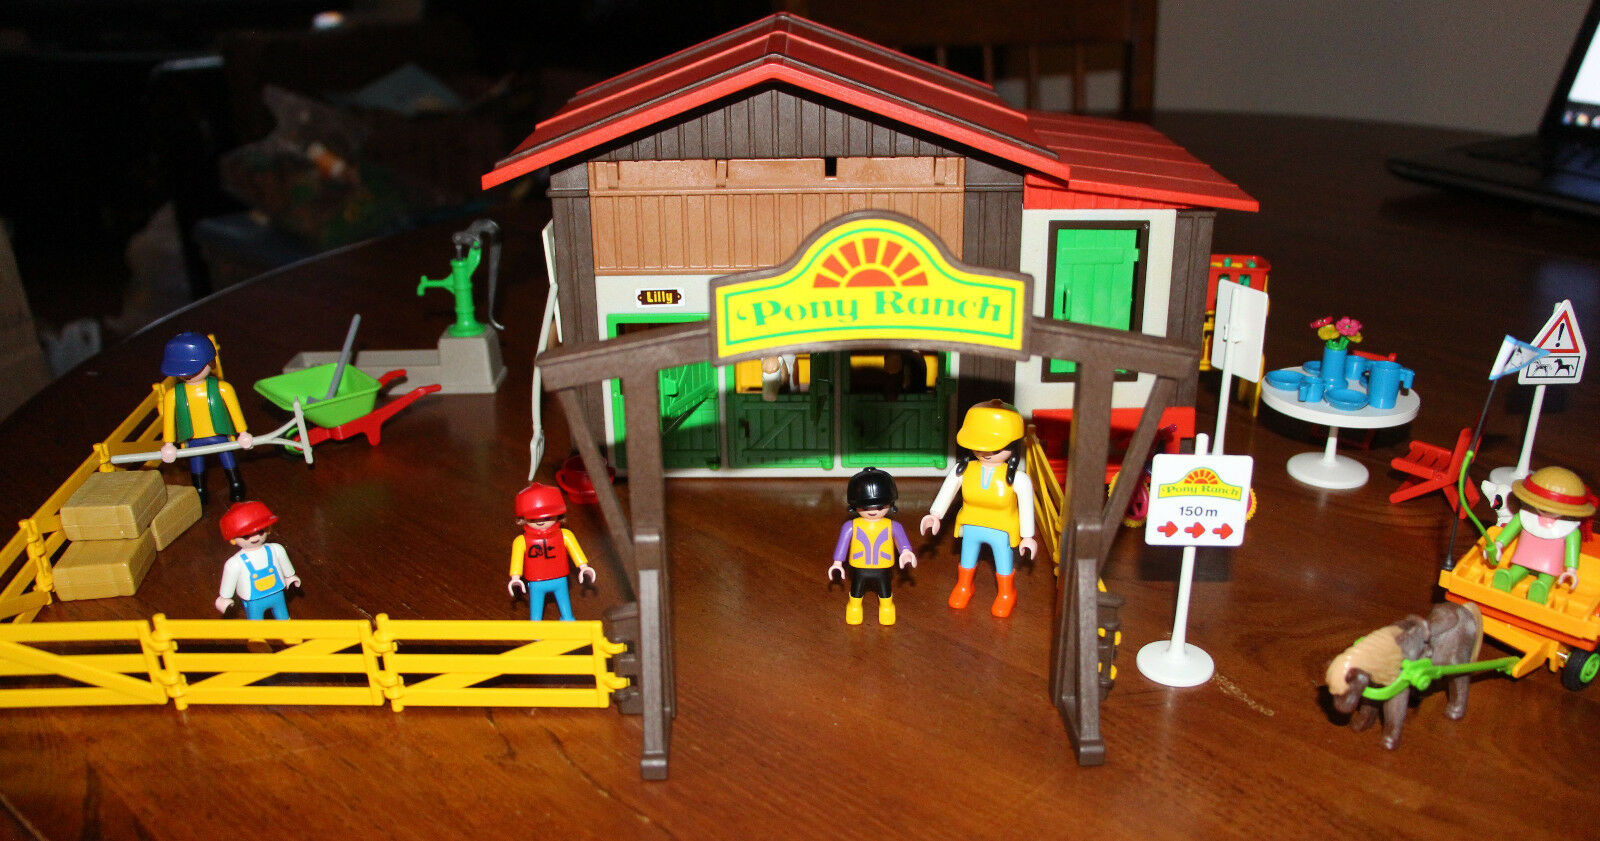 VTG Playmobil Pony Ranch 3775 and Pony Auto 3118  (TWO SETS)